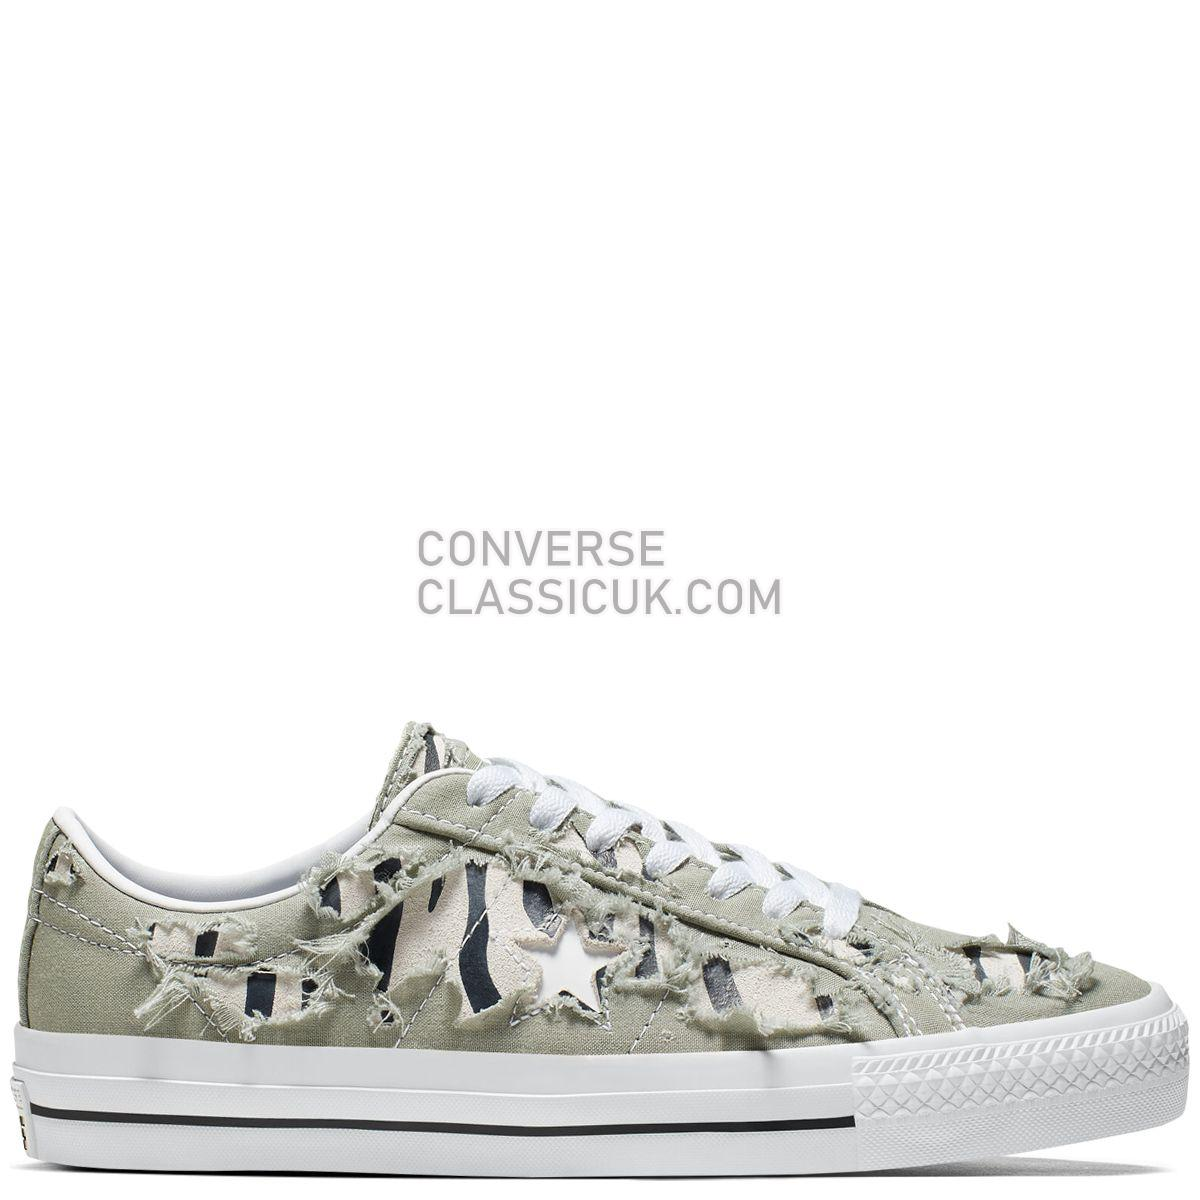 Converse CONS One Star Pro Archive Print Low Top Jade Stone Mens 165337 Jade Stone/Black/White Shoes